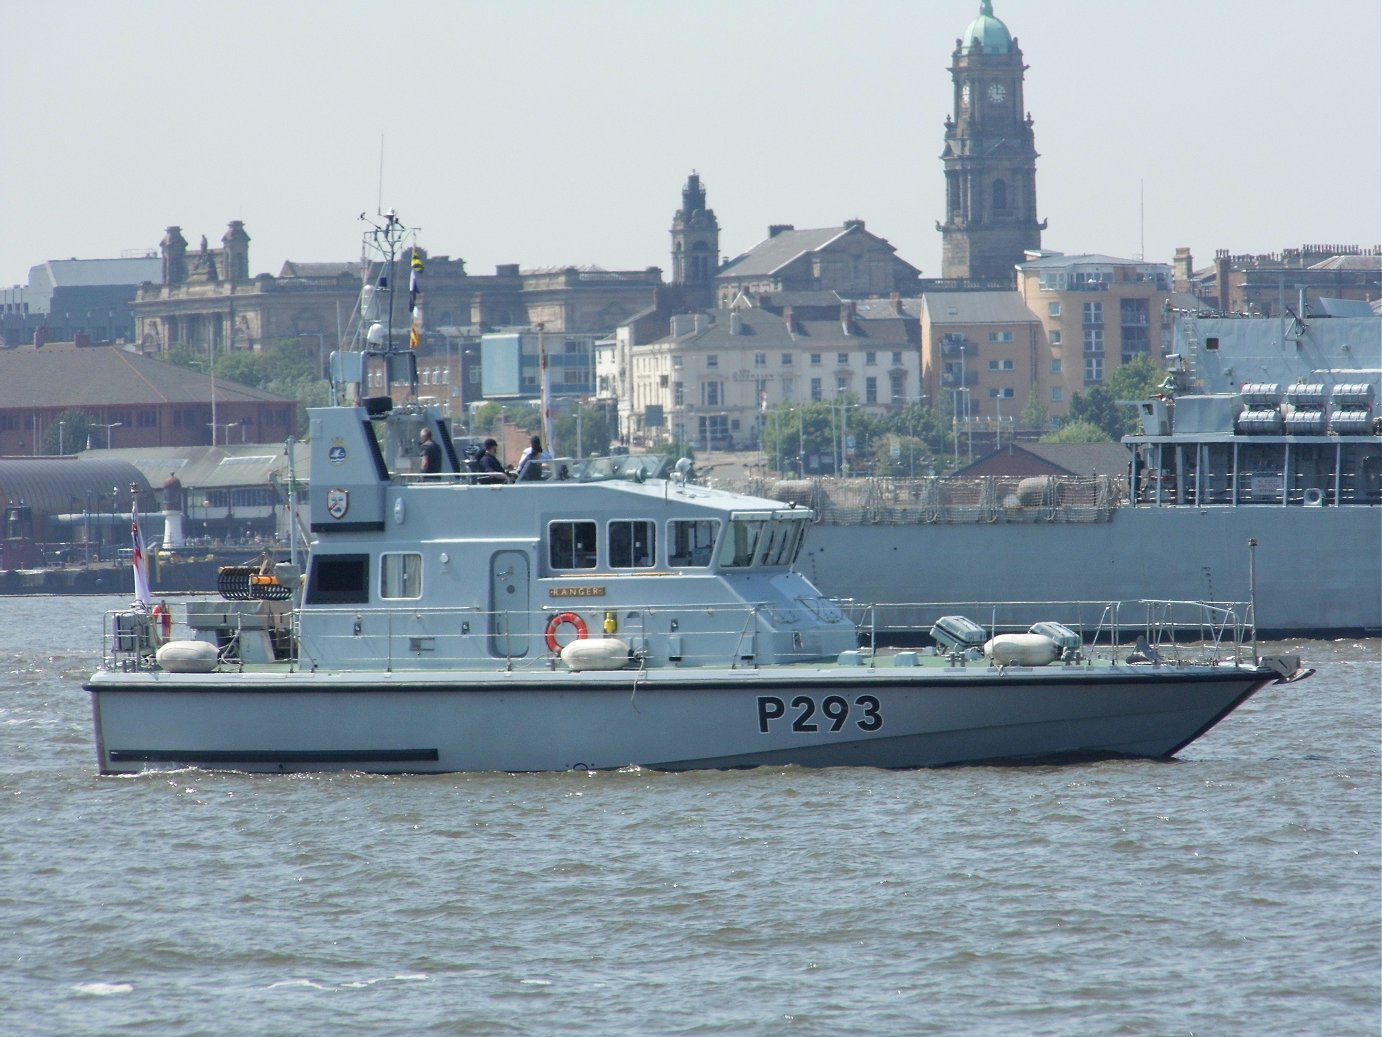 Explorer class coastal training patrol craft H.M.S. Ranger at Liverpool, May 28th 2018